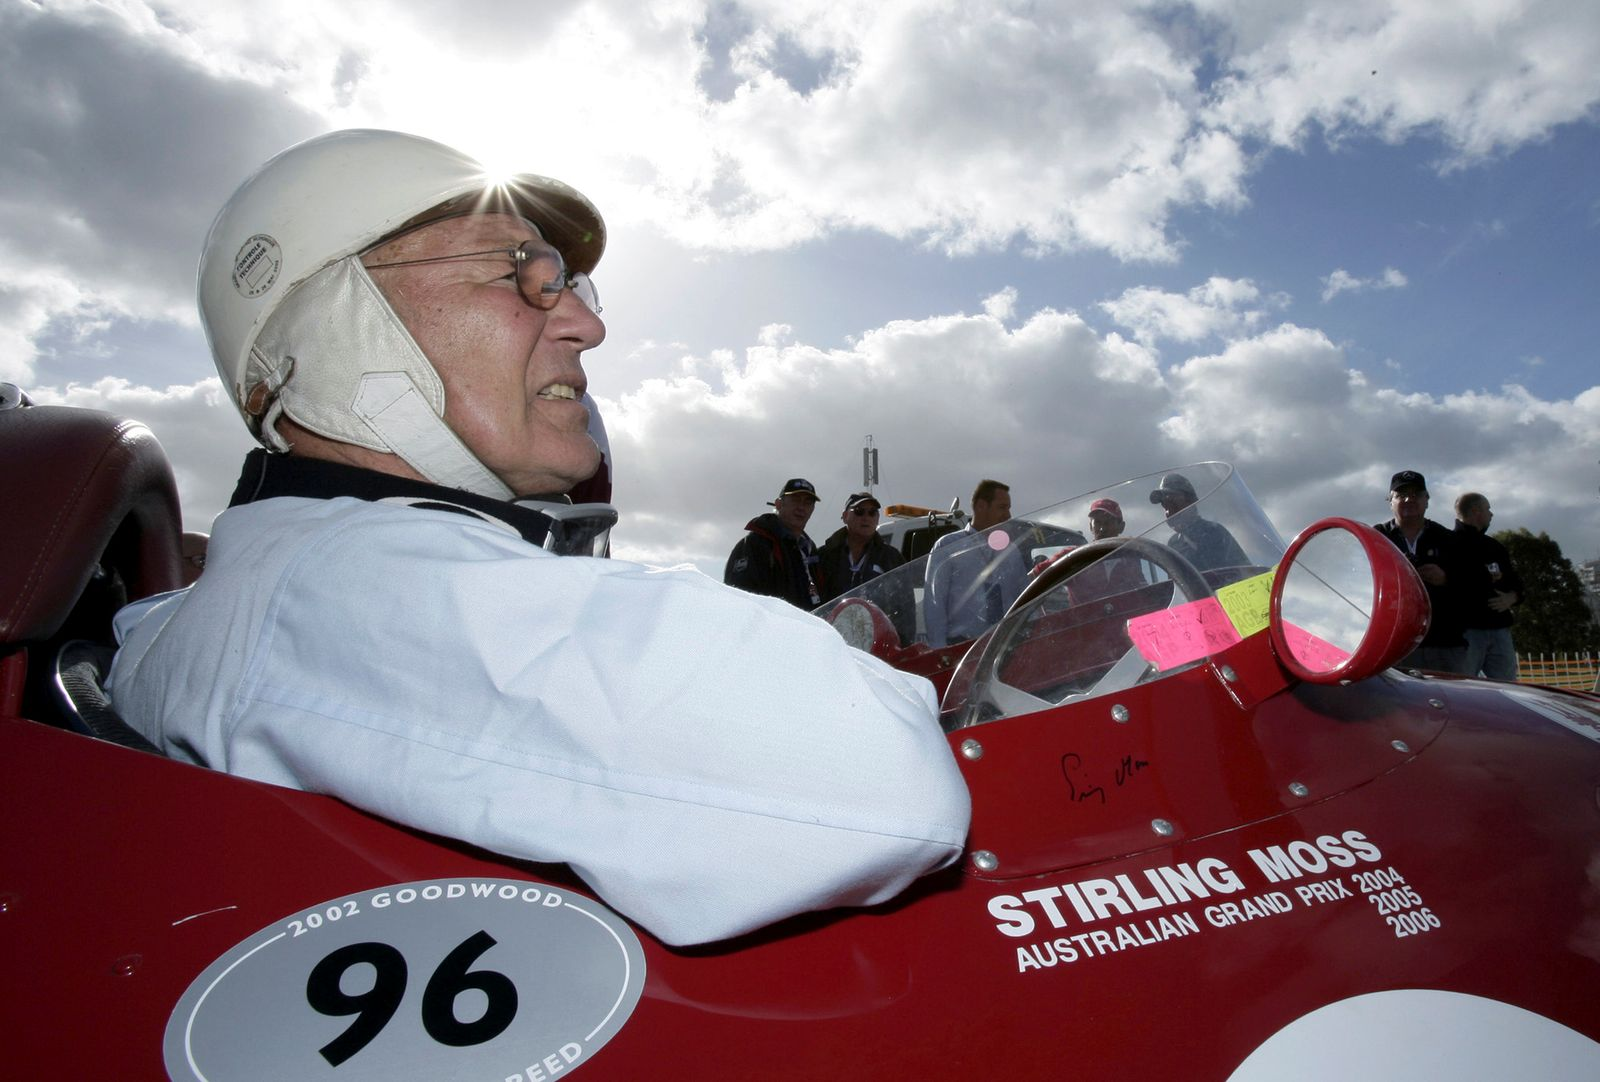 FILE PHOTO: Stirling Moss sits in a Maserati replica Formula One car in Melbourne in this April 2, 2006 file photo